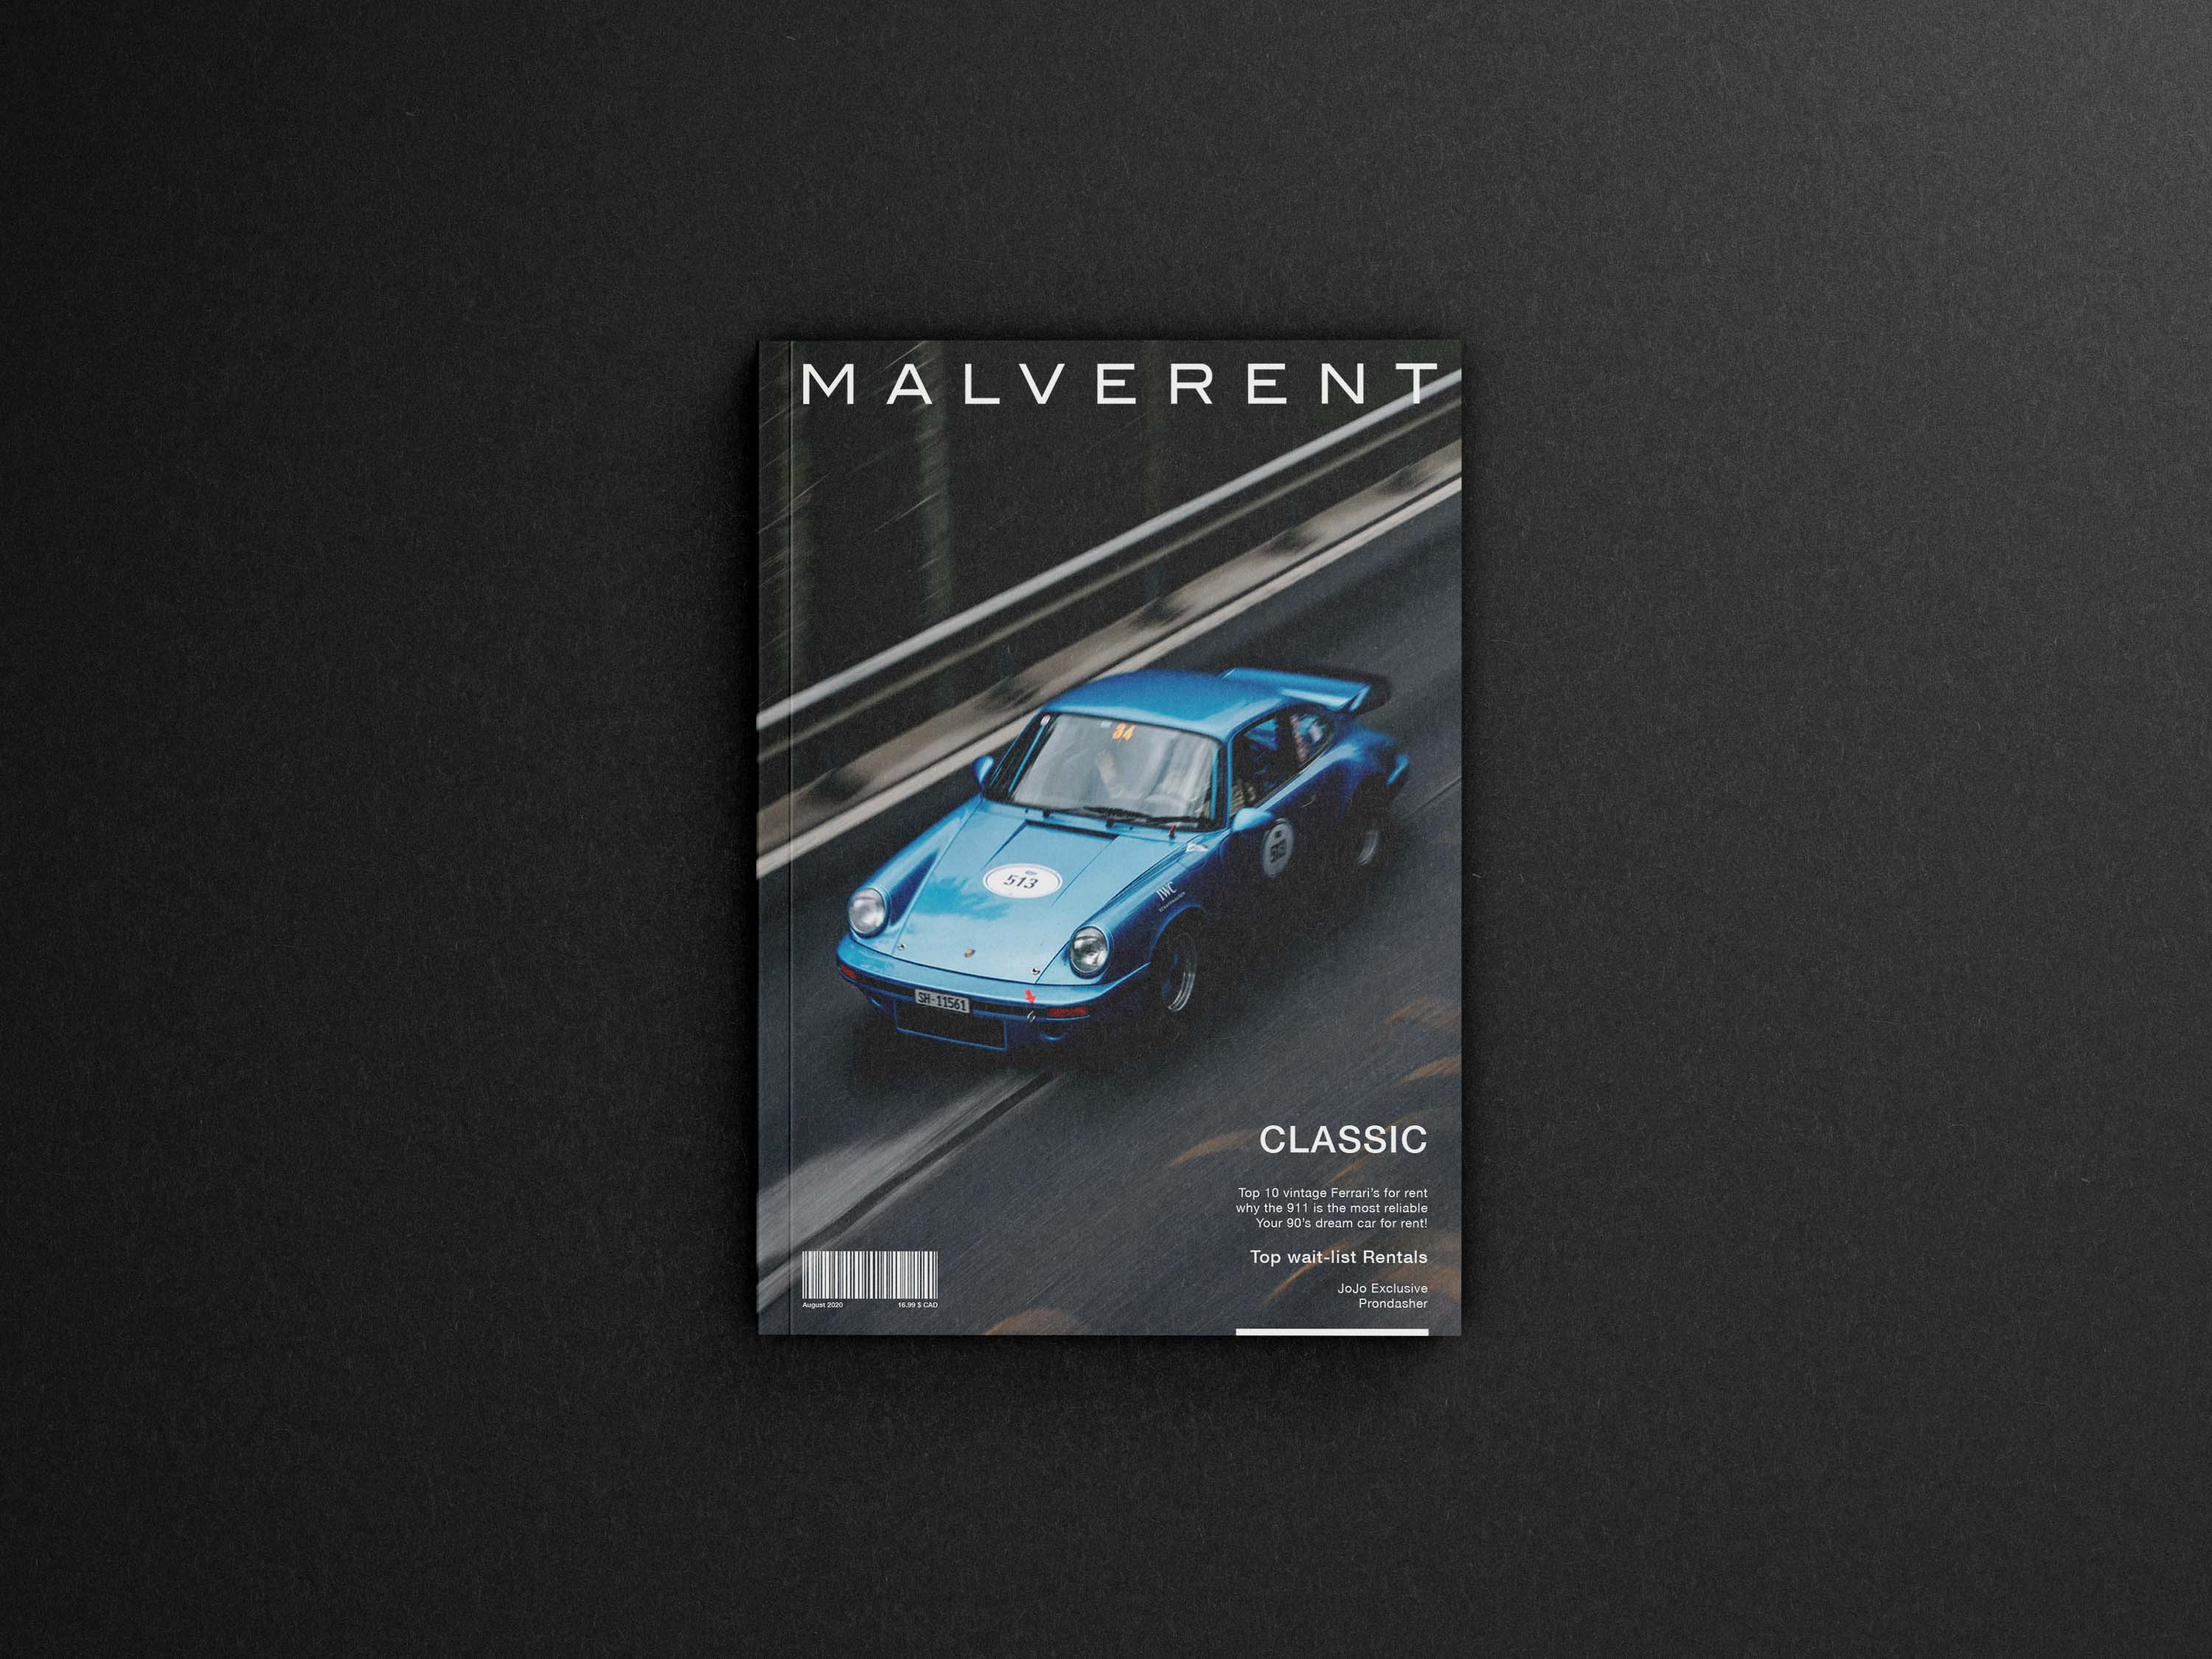 Malverent is an Editorial Car magazine cover concept aimed to target a niche market of car enthusiasts focused on vintage and exclusive cars for rental across the North American market.